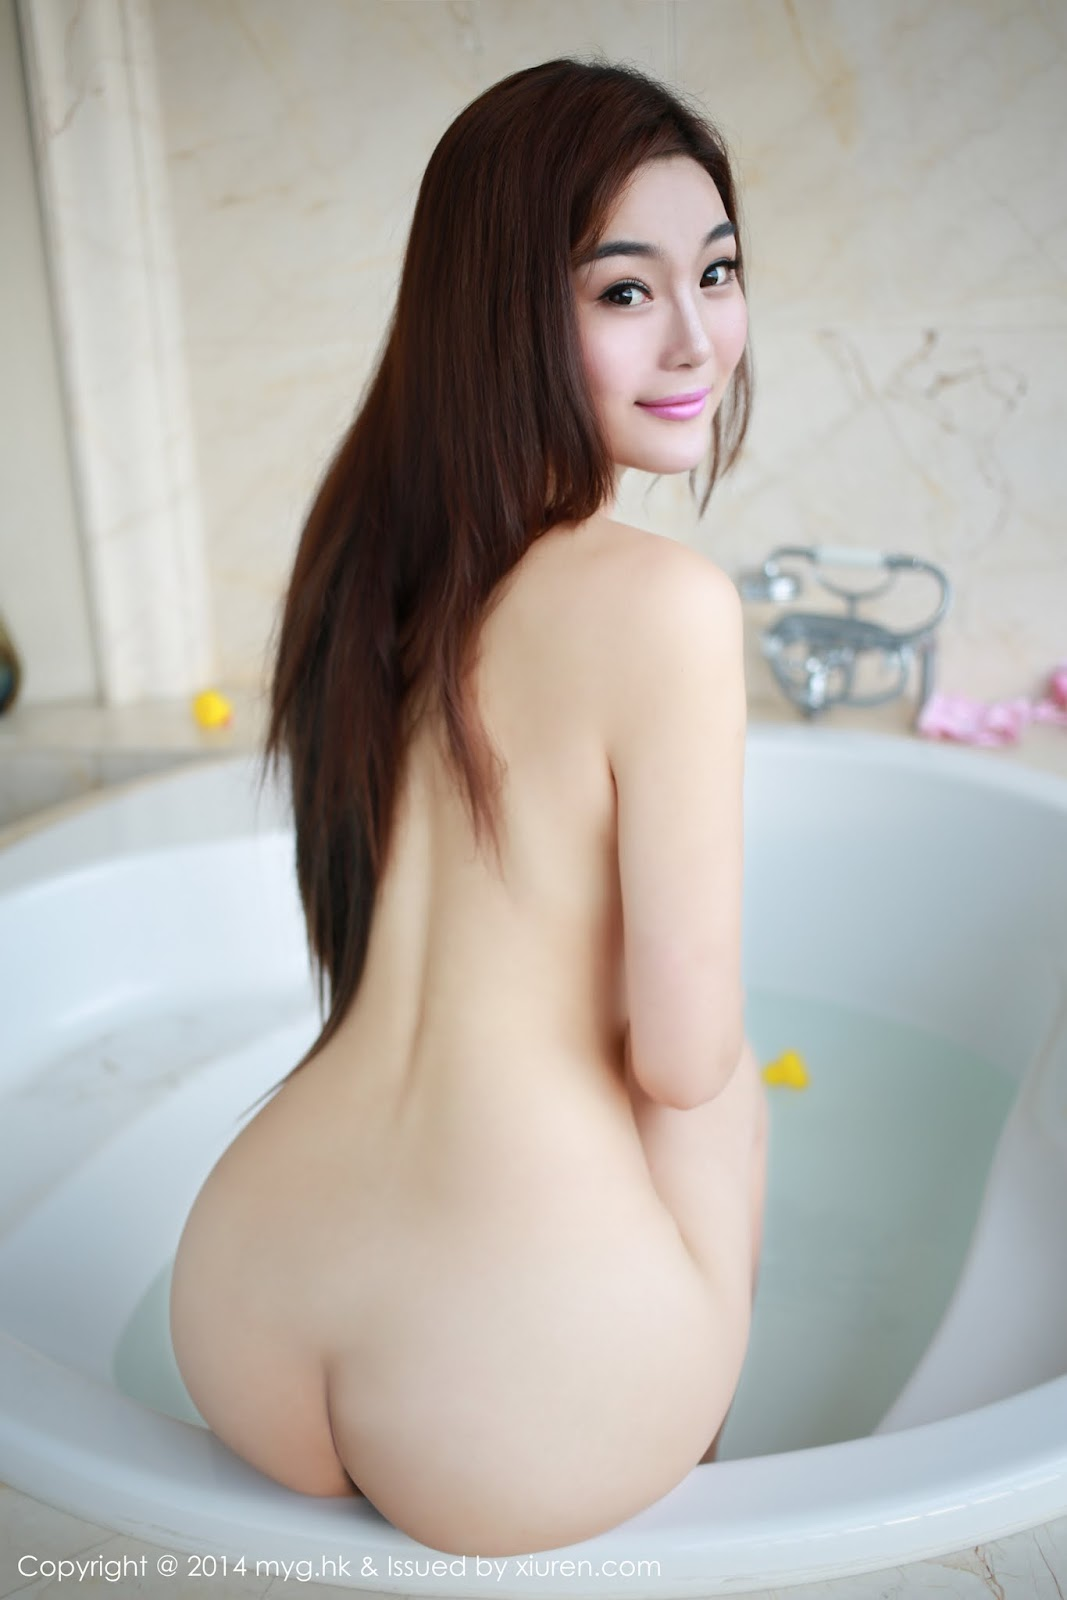 0018 - Beautiful Naked Girl Model MYGIRL VOL.35